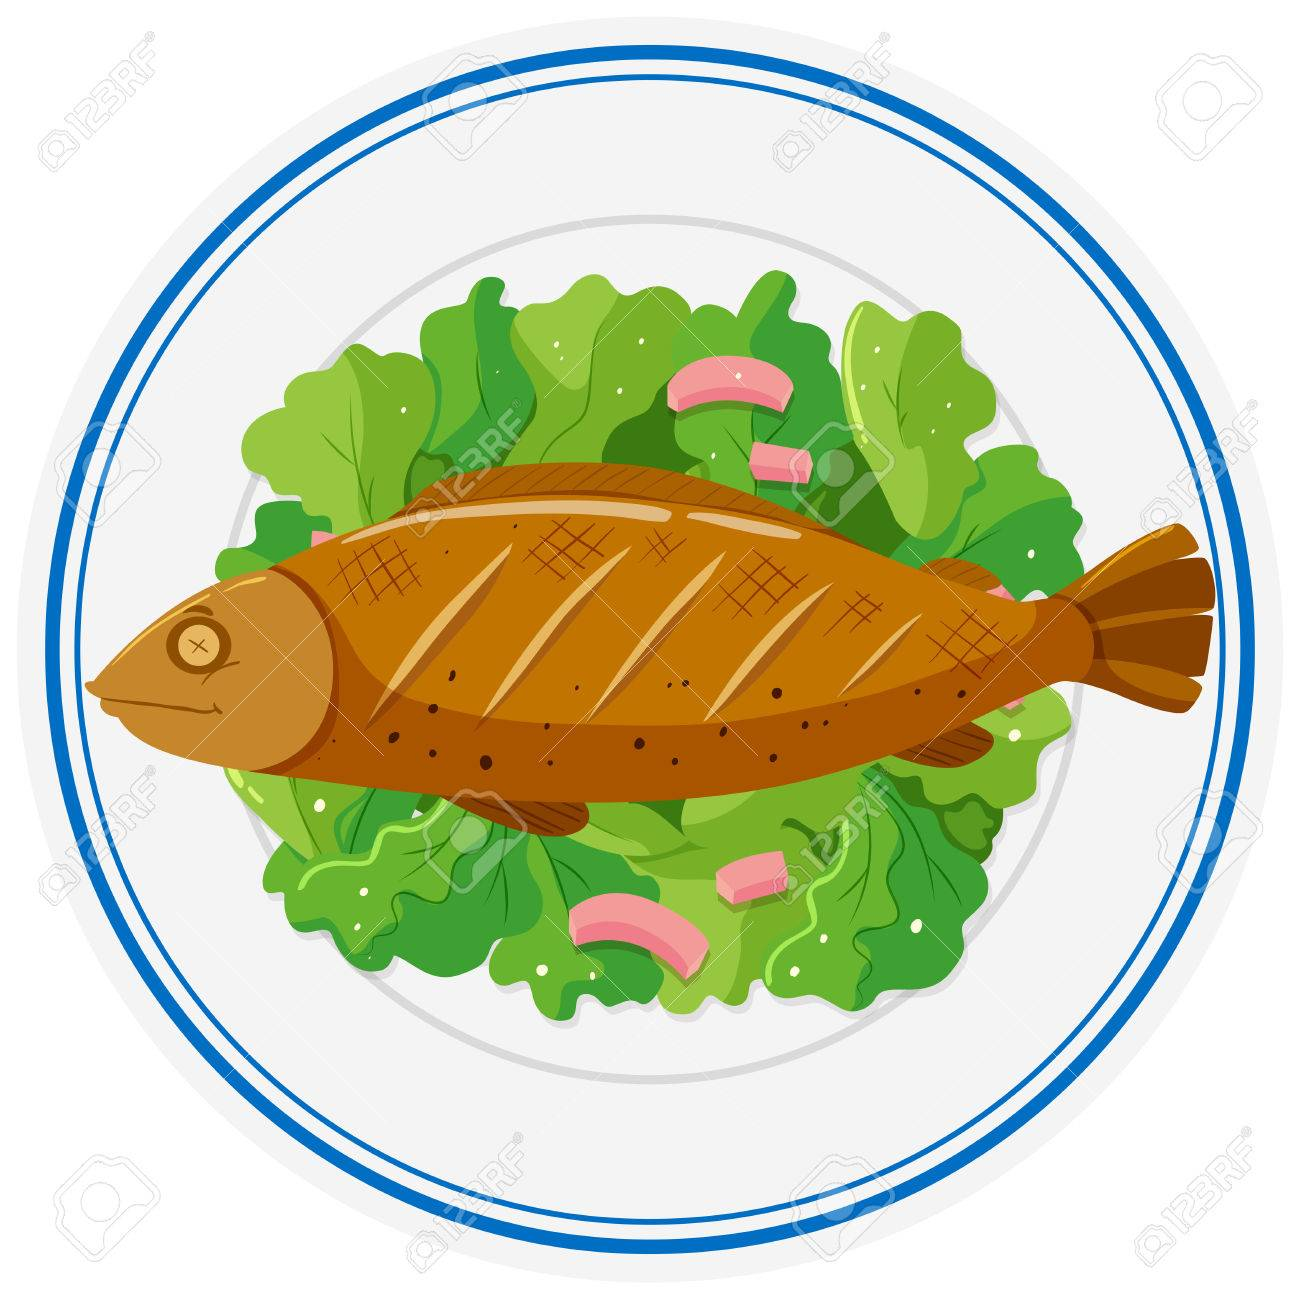 Grilled fish and vegetables on plate illustration.